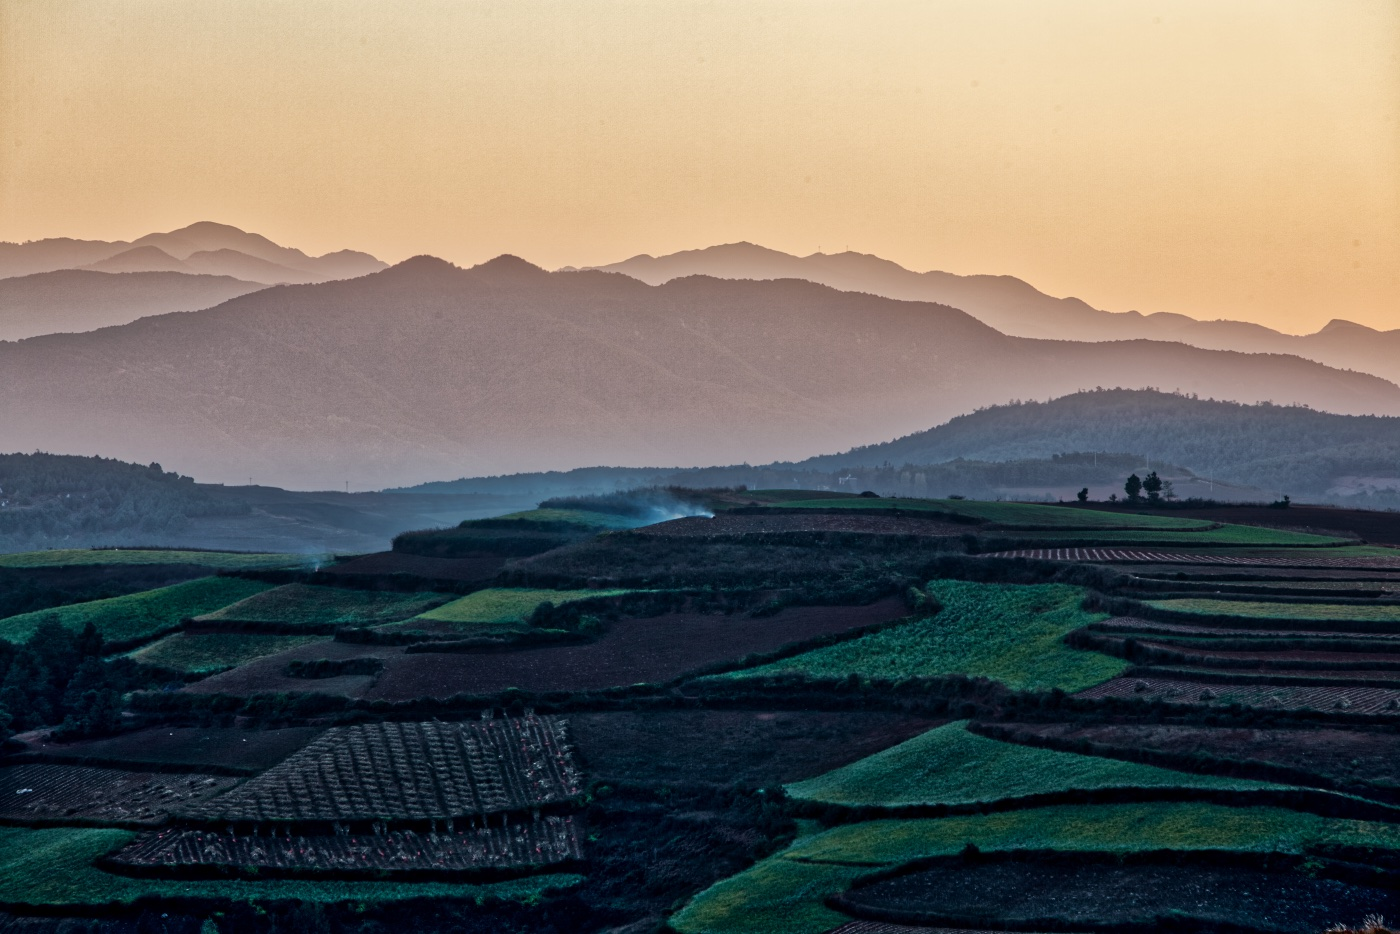 Dongchuan, Yunnan, China